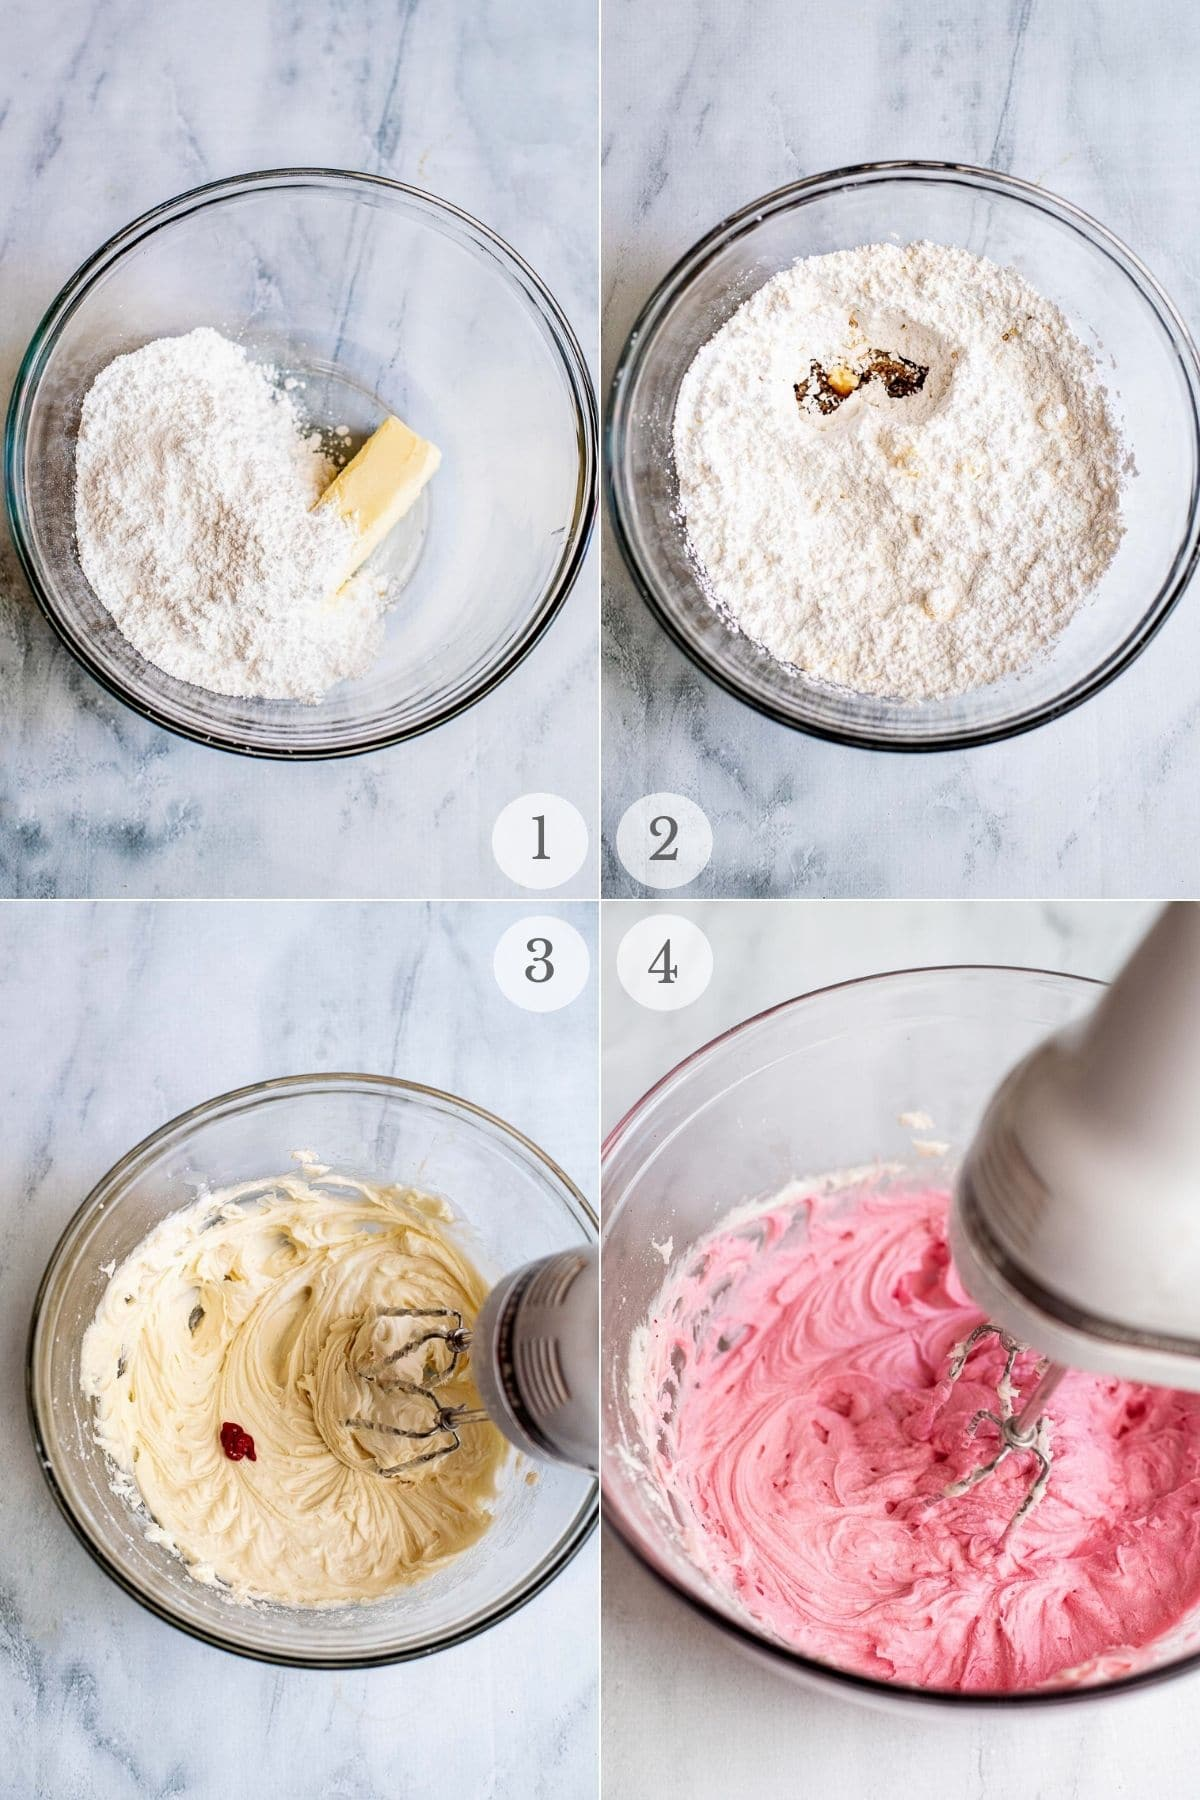 lofthouse cookie frosting recipe steps 1-4